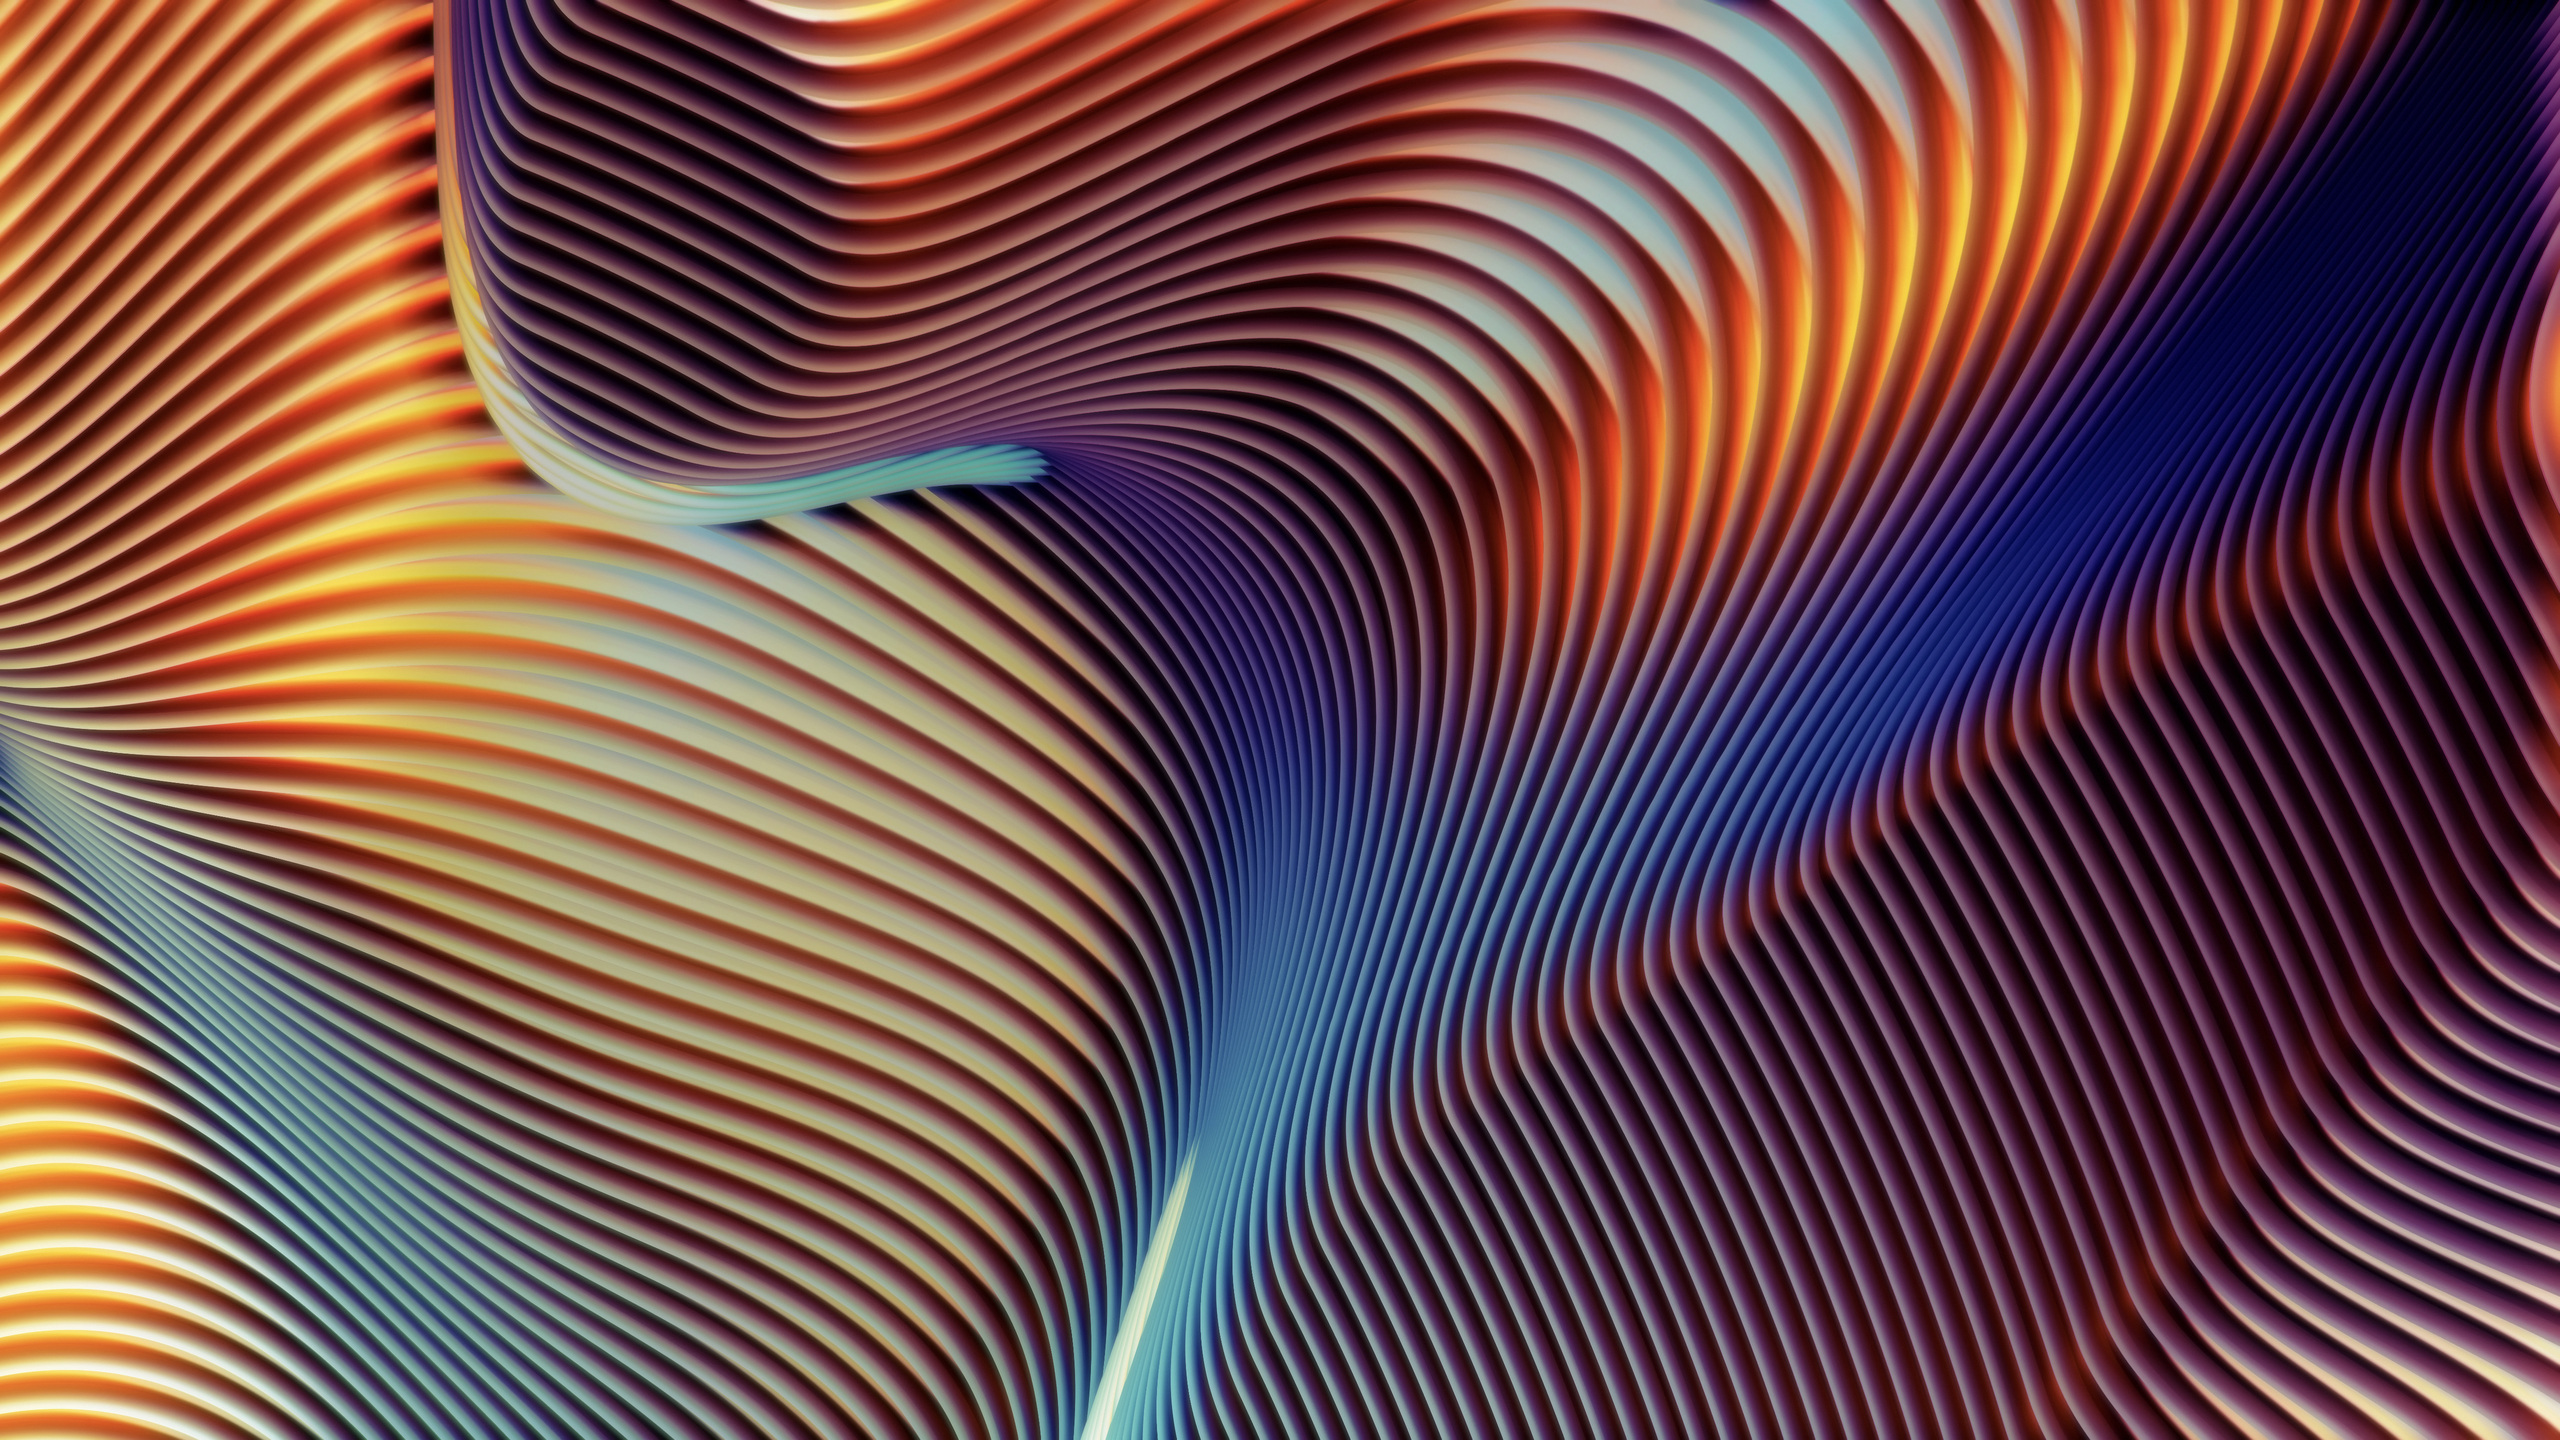 5k-abstract-shapes-retina-display-y1.jpg